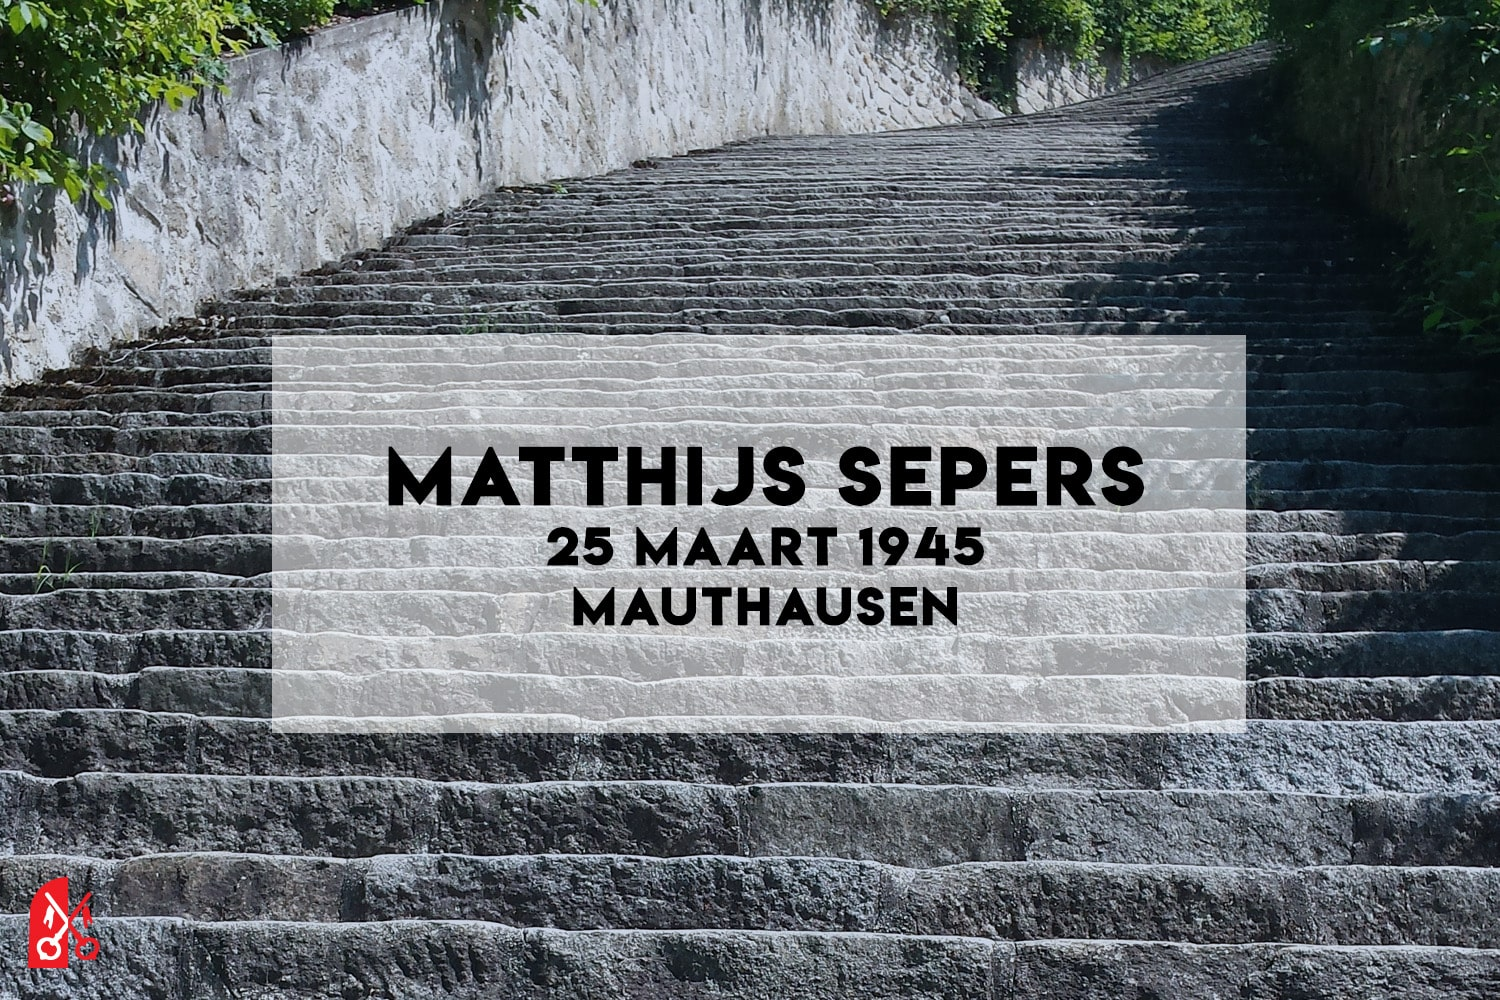 Matthijs Sepers stierf in Mauthausen